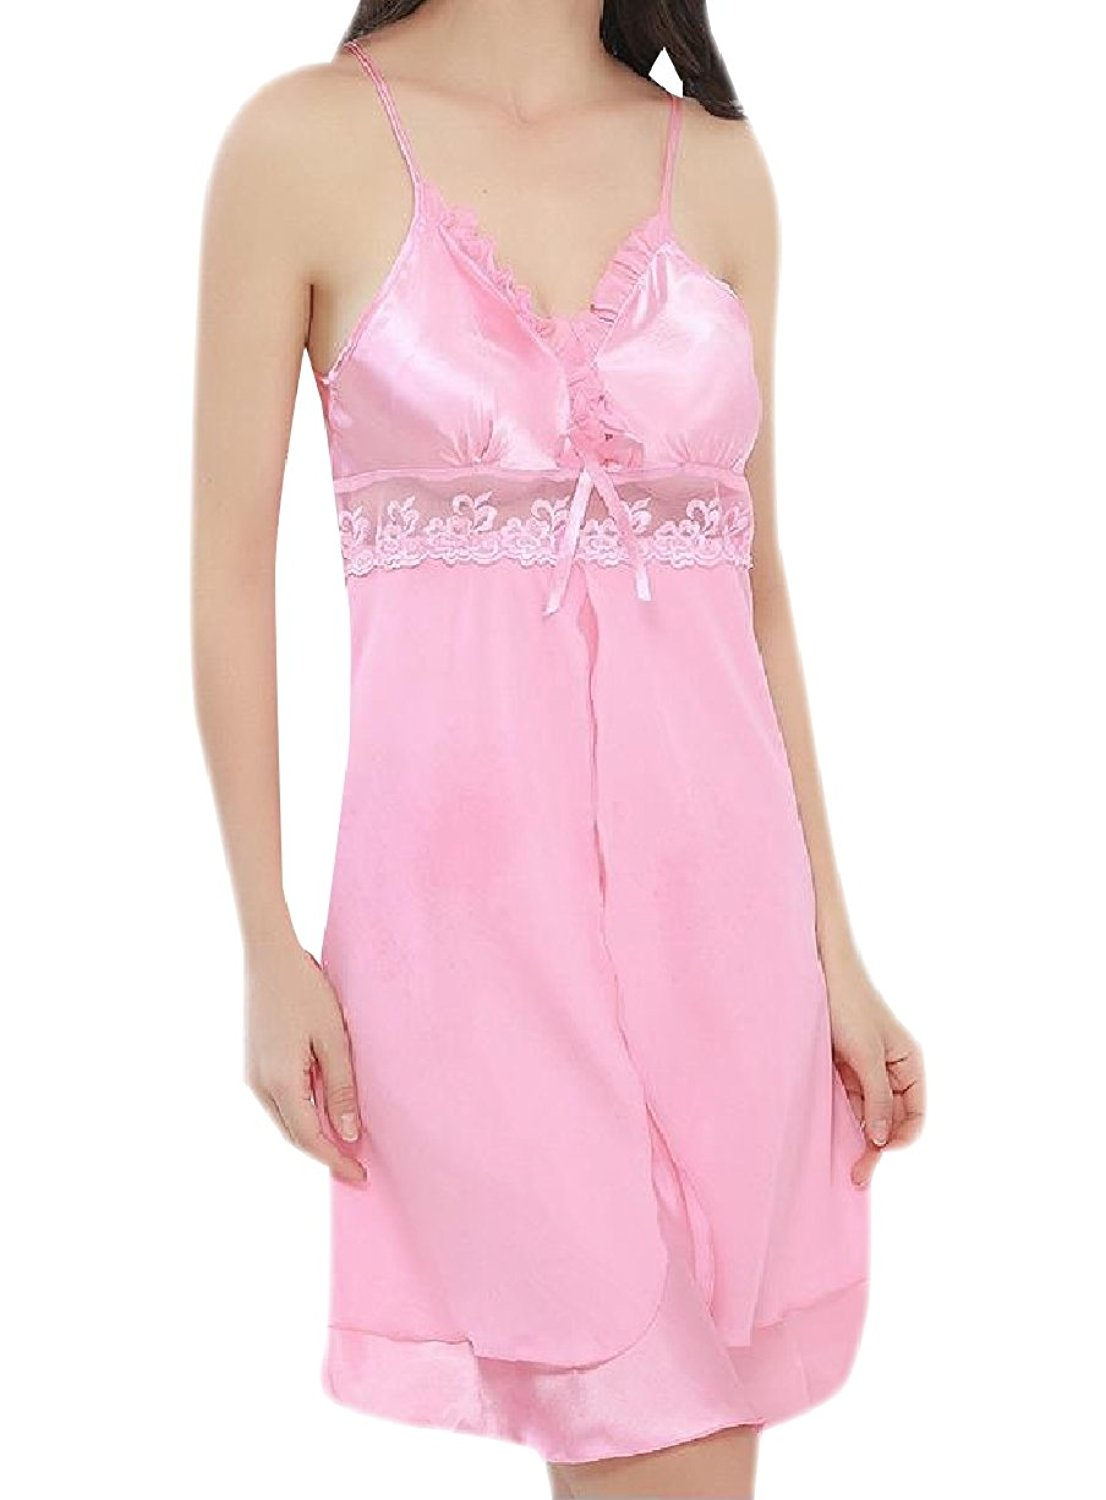 Zimaes-Women Bandeaux Chiffon See-Through Sexy Floral Lace Sleeping Dress